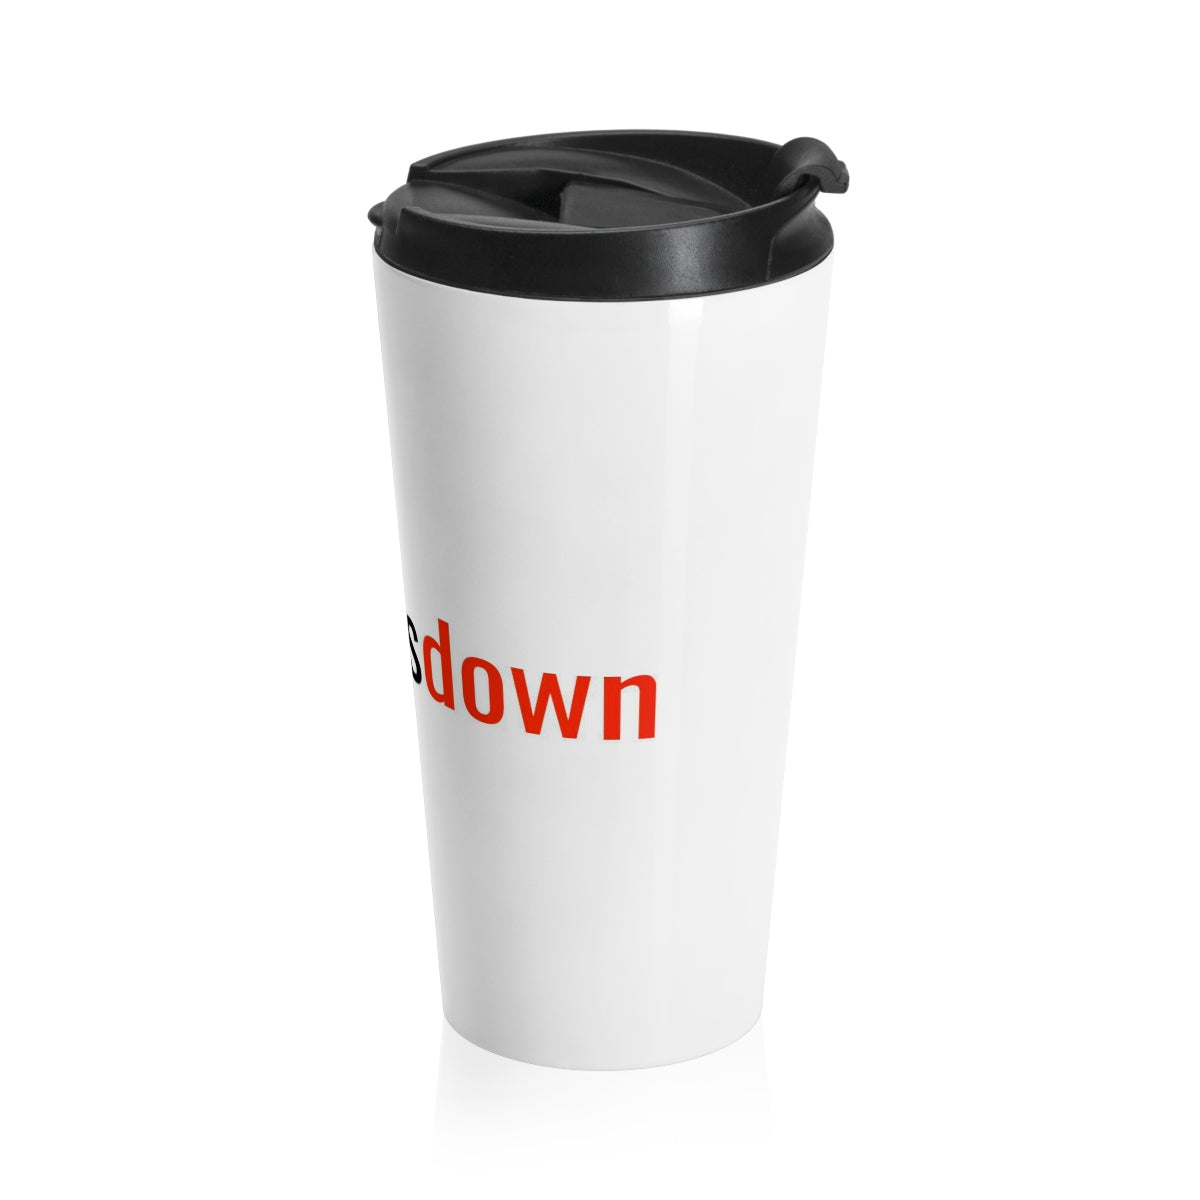 Five Toes Down # Stainless Steel Travel Mug